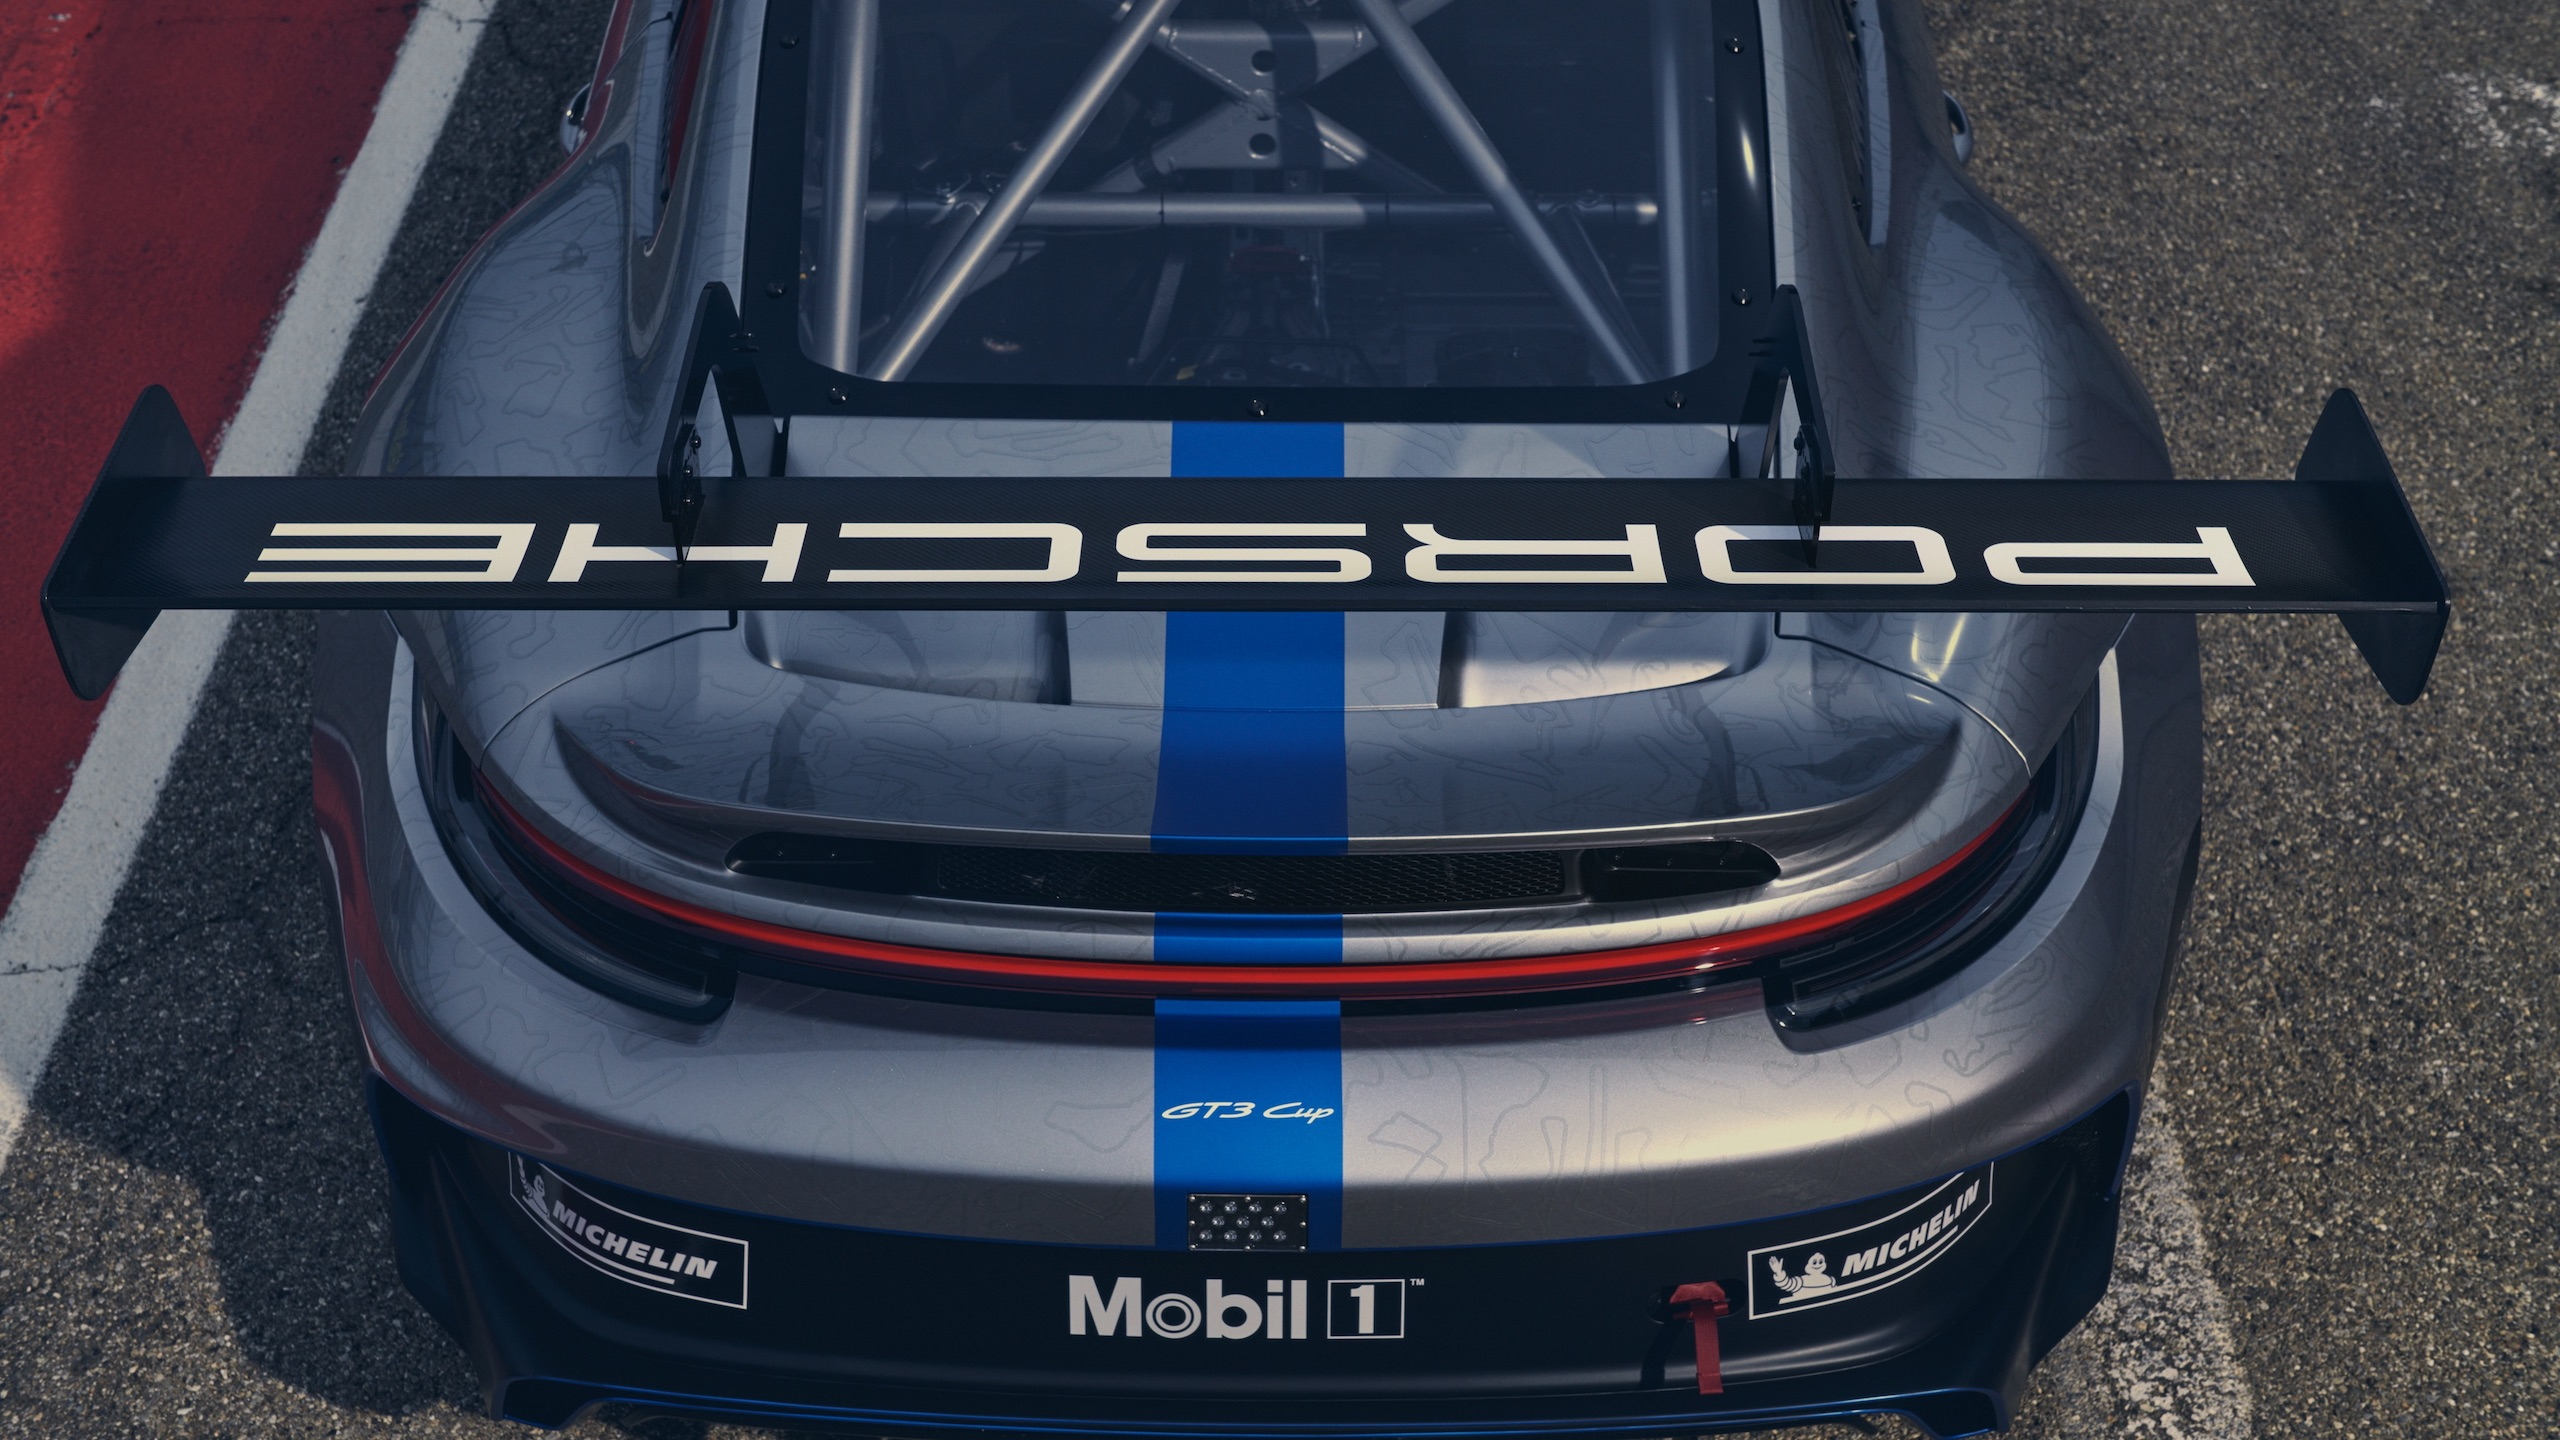 Porsche 911 GT3 rear wing detail